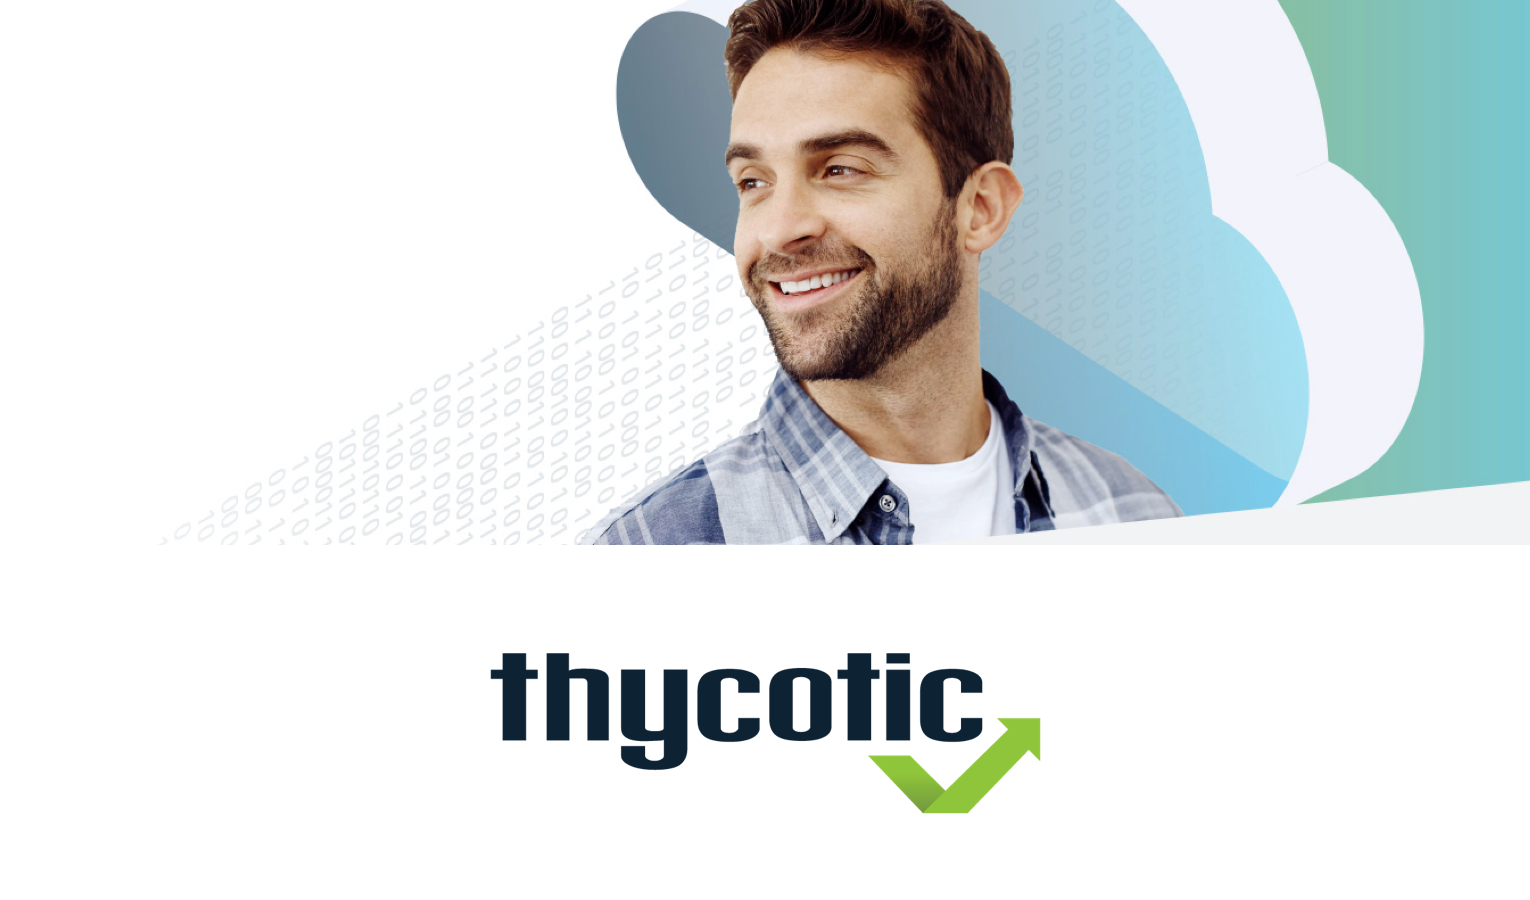 Always ready to help: Troops helps to empower Thycotic's global customer support team to hit a 99+% response rate